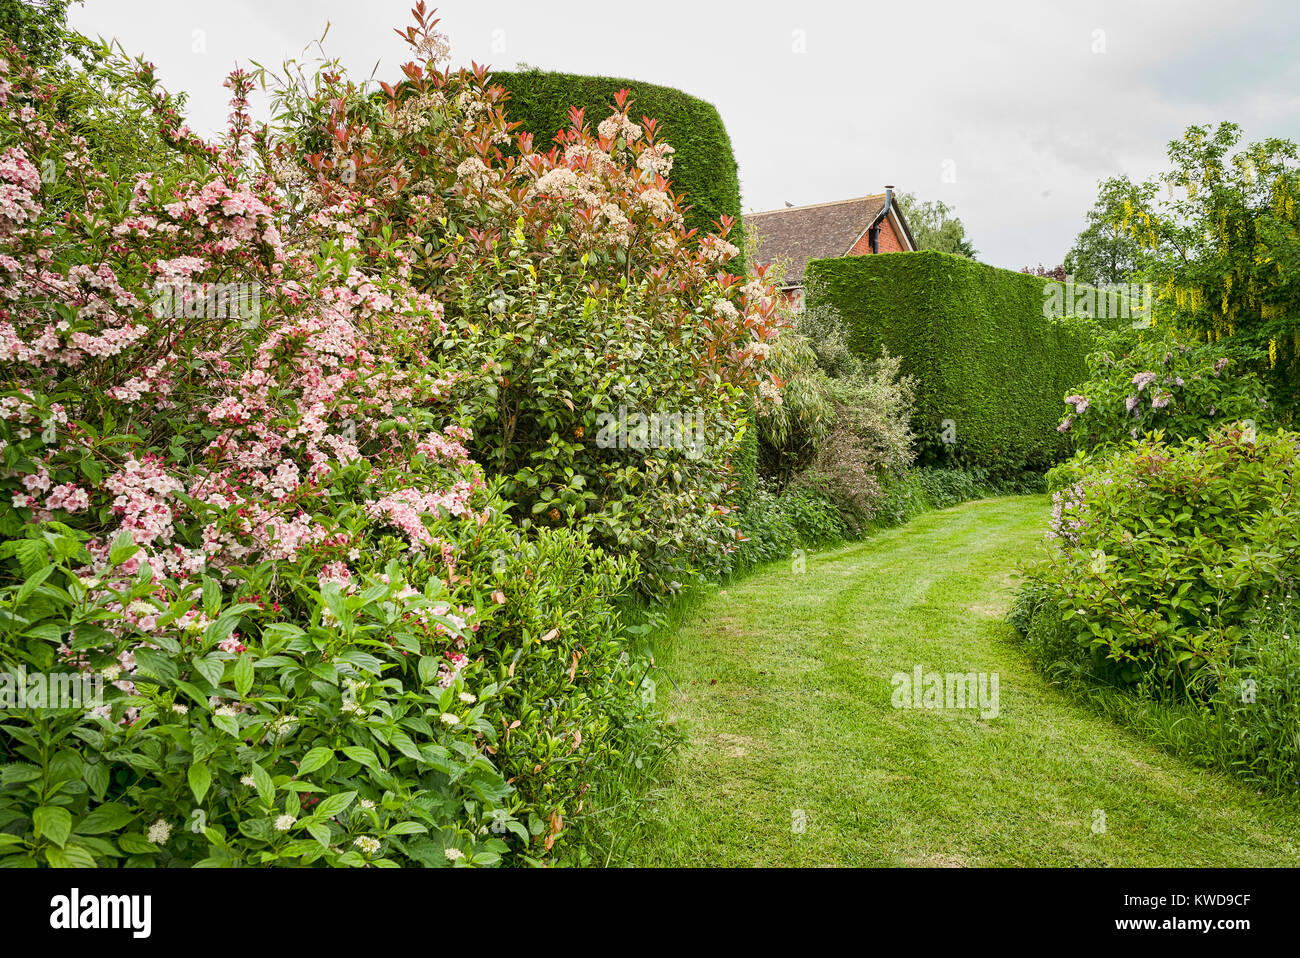 Wide grass path linking tow separate parts of an English garden; flanked by a variety of flowering trees and shrubs - Stock Image